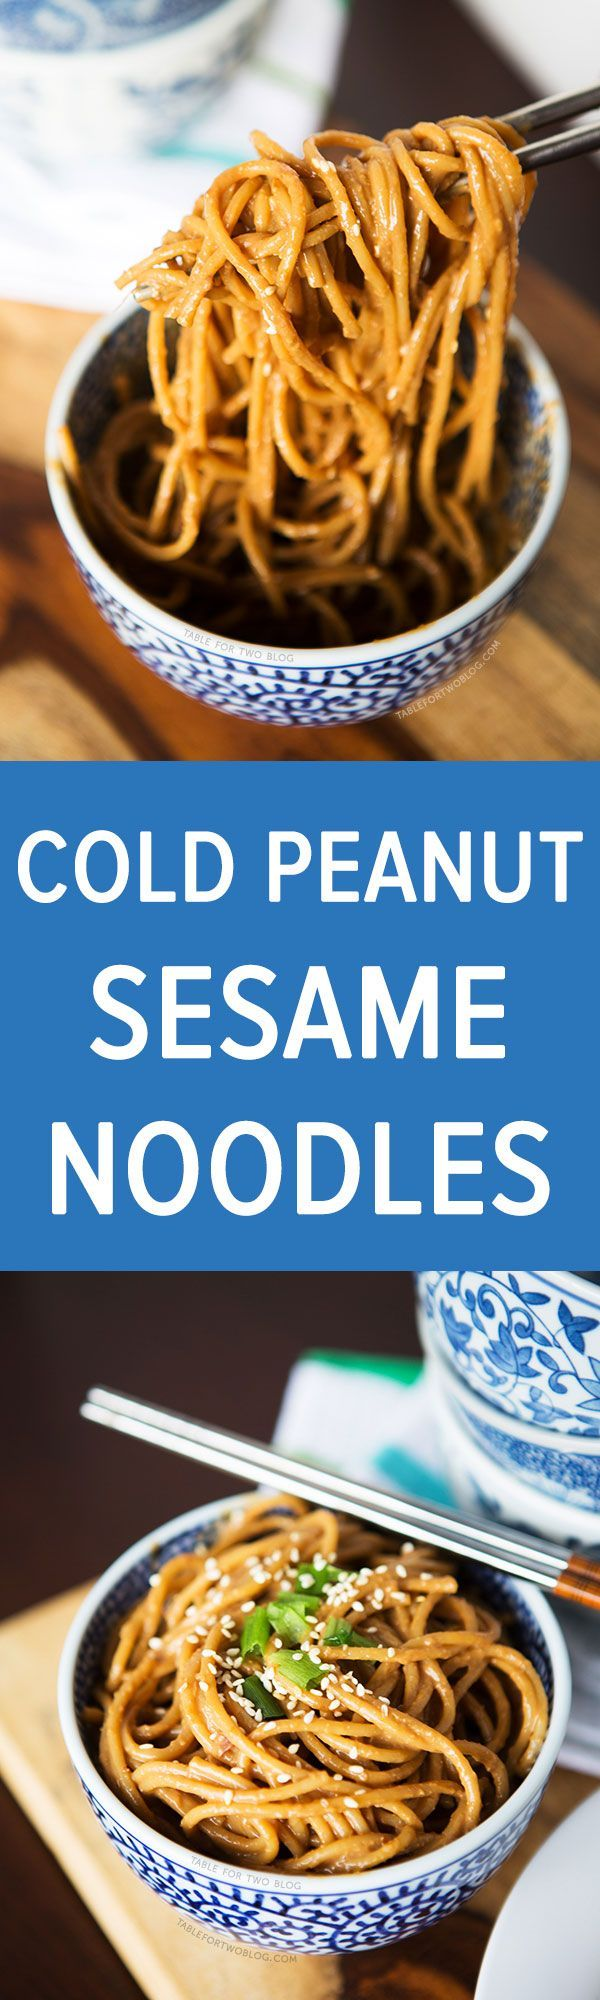 These cold spicy peanut sesame noodles are so yummy for any day of the week! If your kid enjoys a little spice and has no peanut allergies, then this could be the perfect lunchbox item!